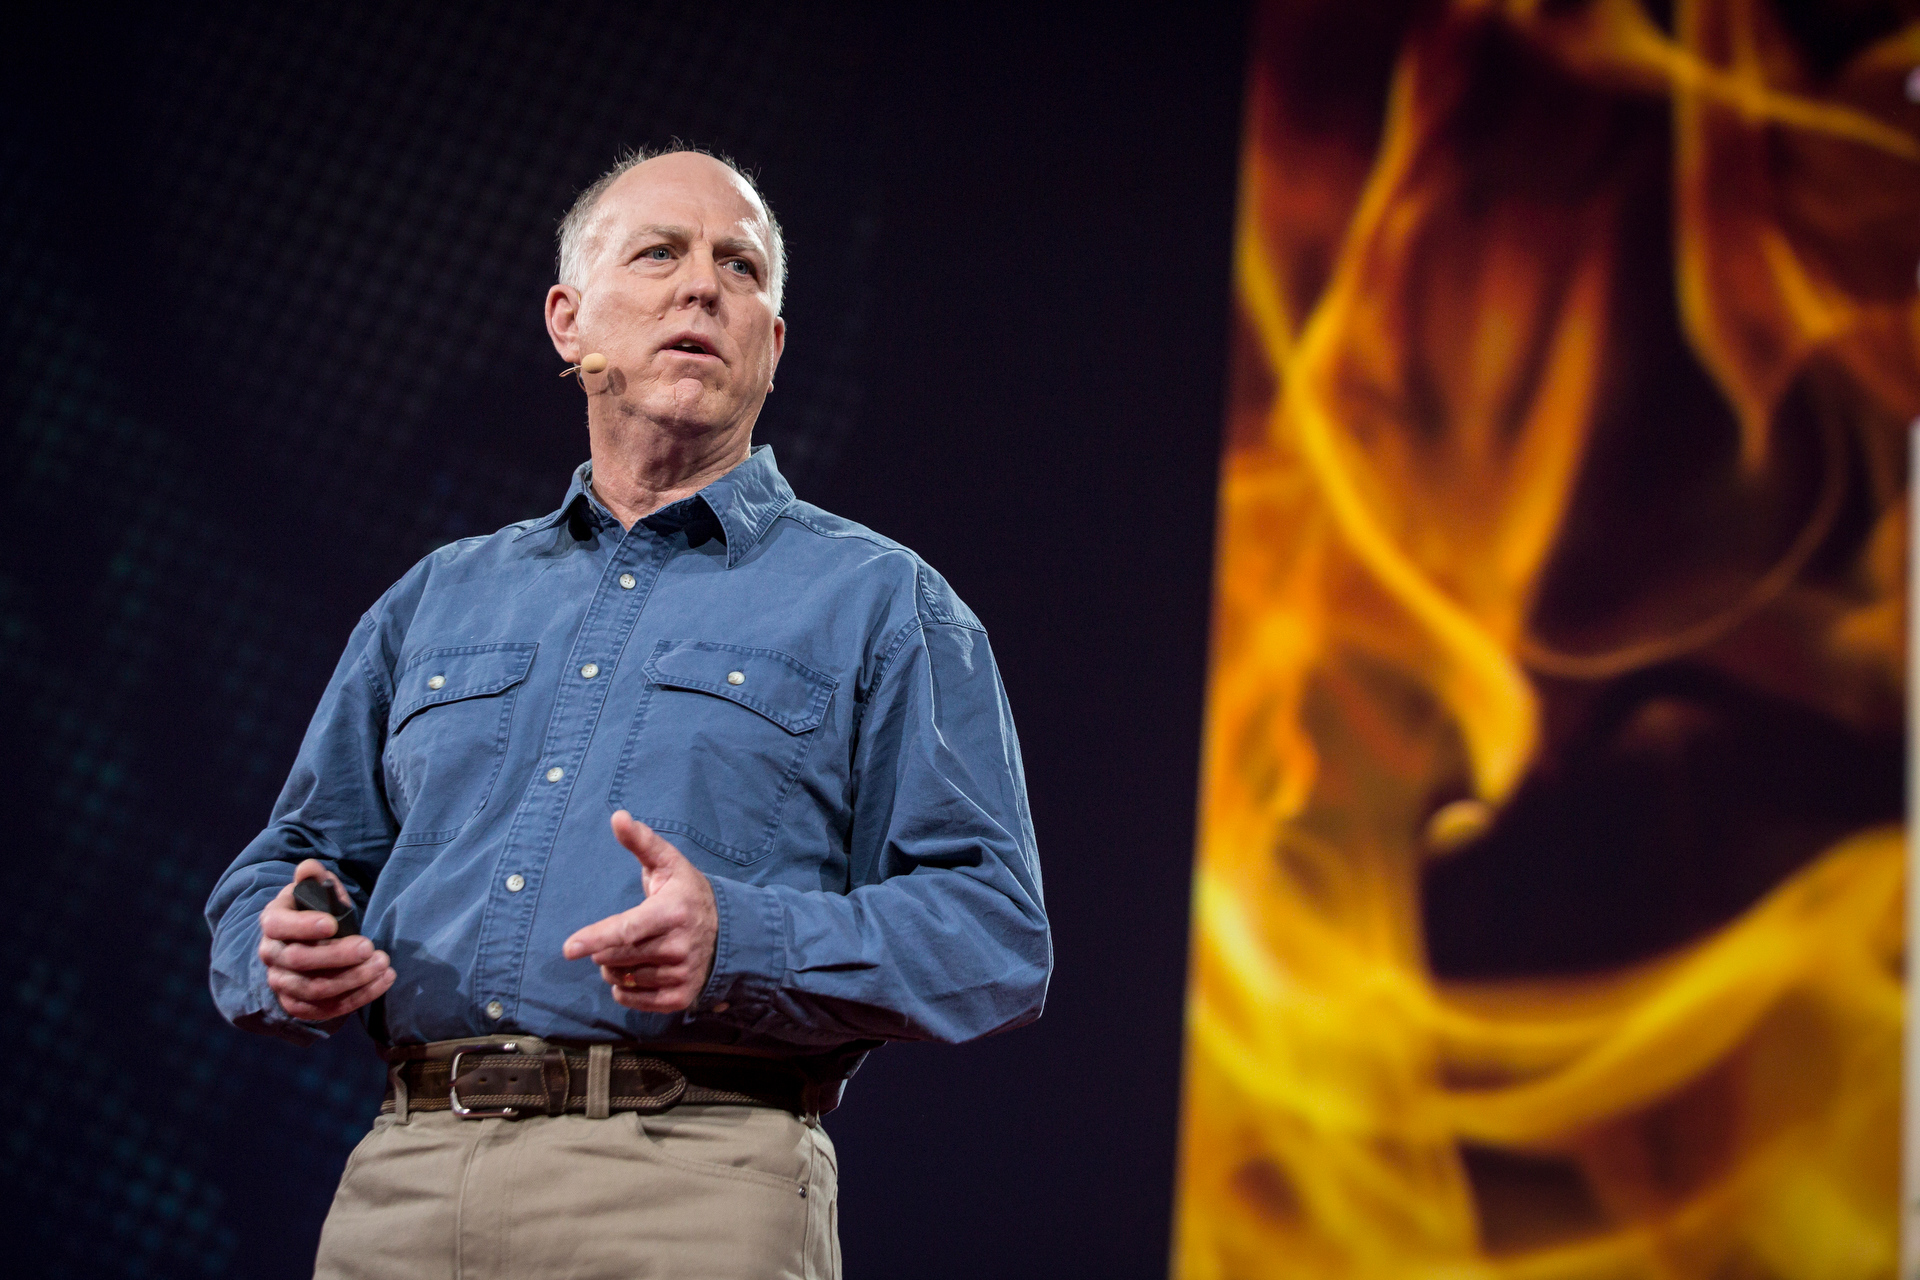 Stephen Pyne speaks at TED2015 - Truth and Dare, Session 10. Photo: Bret Hartman/TED